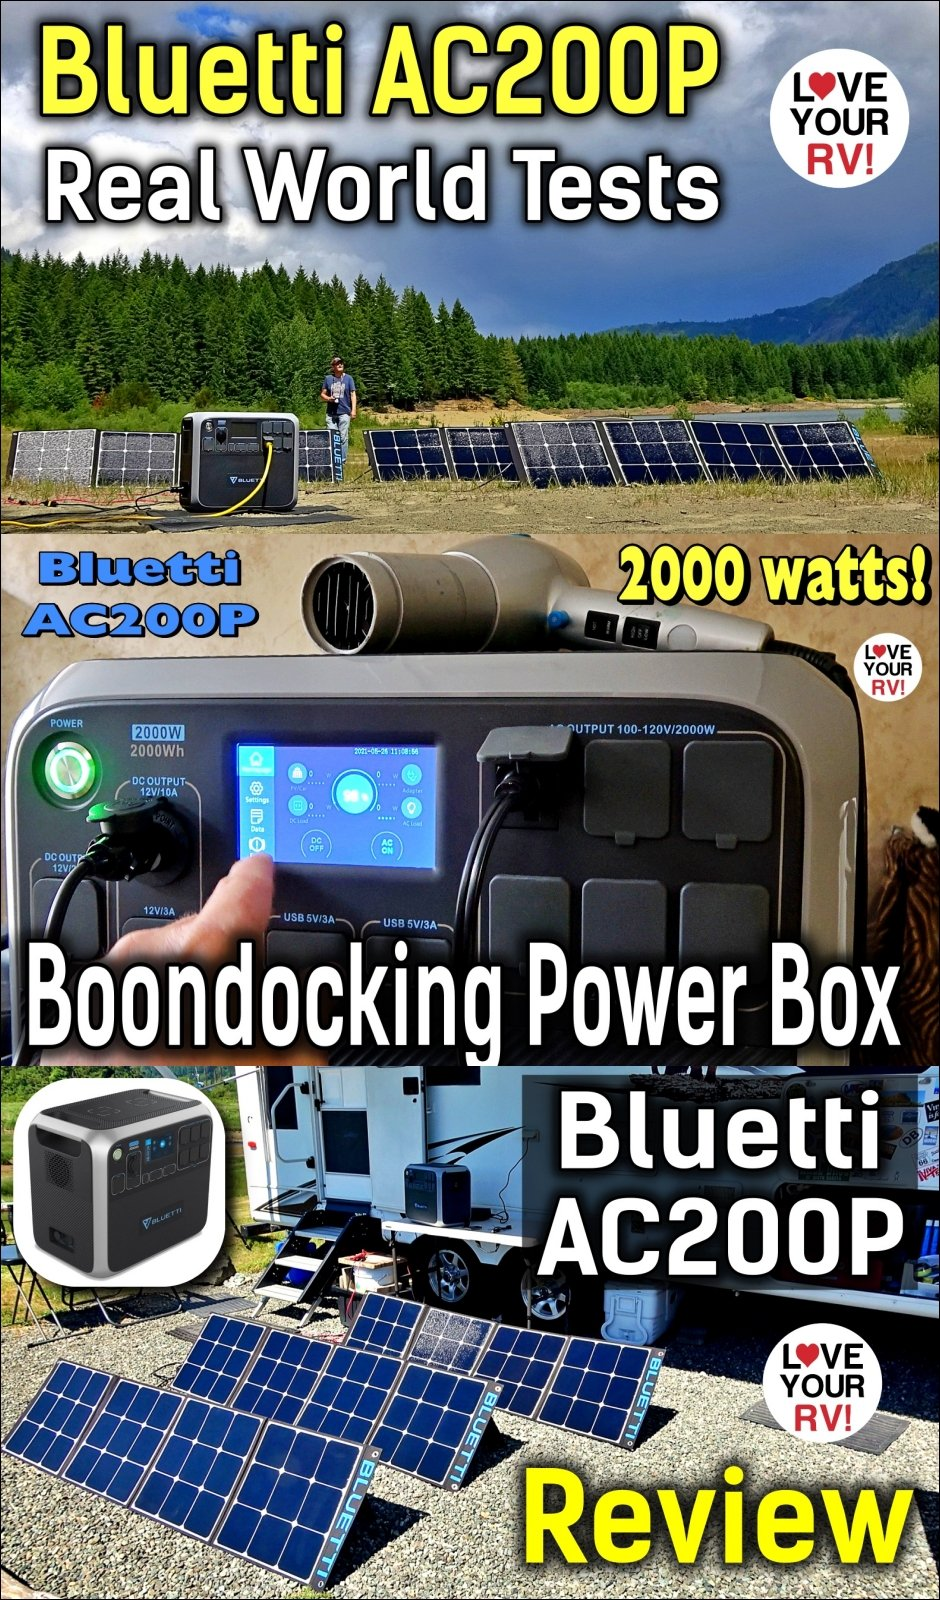 LYRV Review of the Bluetti AC200P portable power station Real World tests demos pros cons and opinion